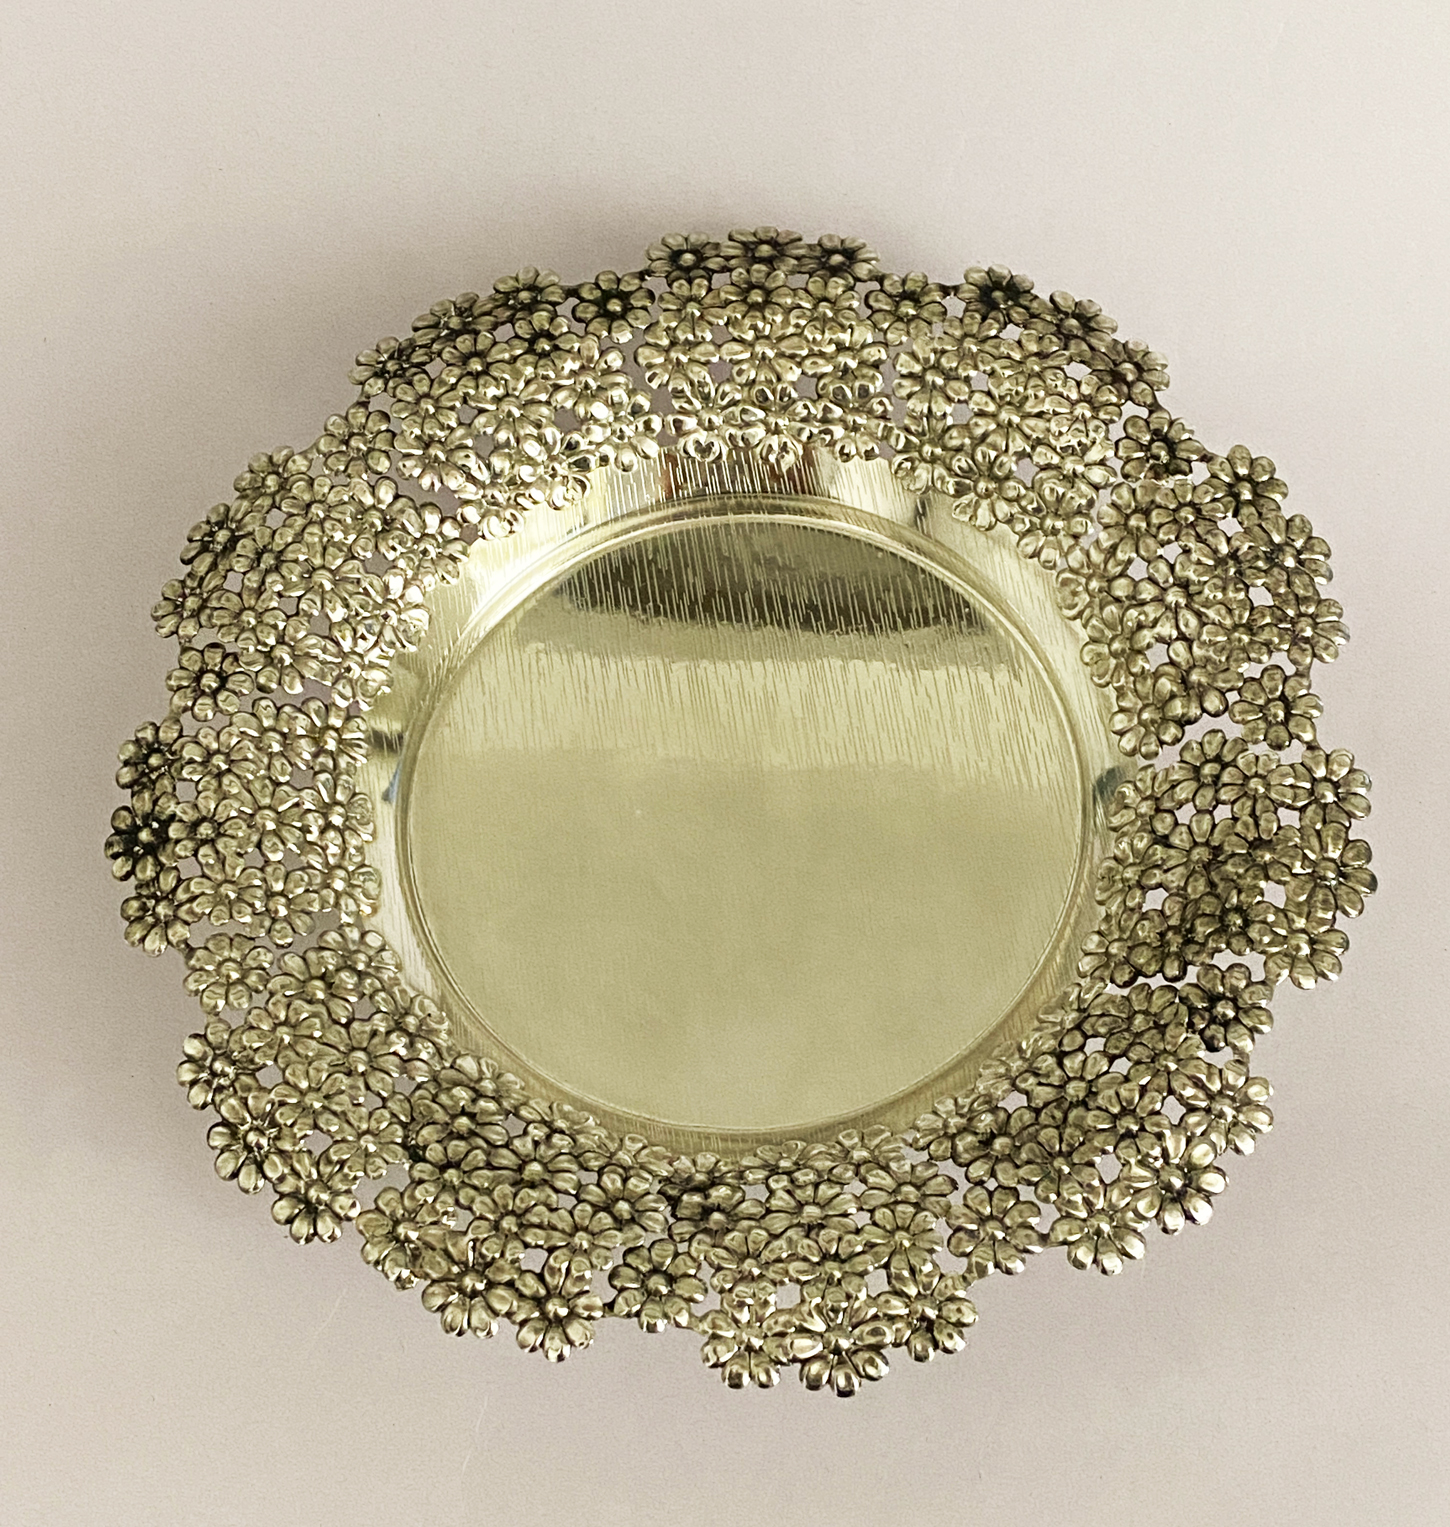 Antique Silver Plated Round Dish   9″ dia